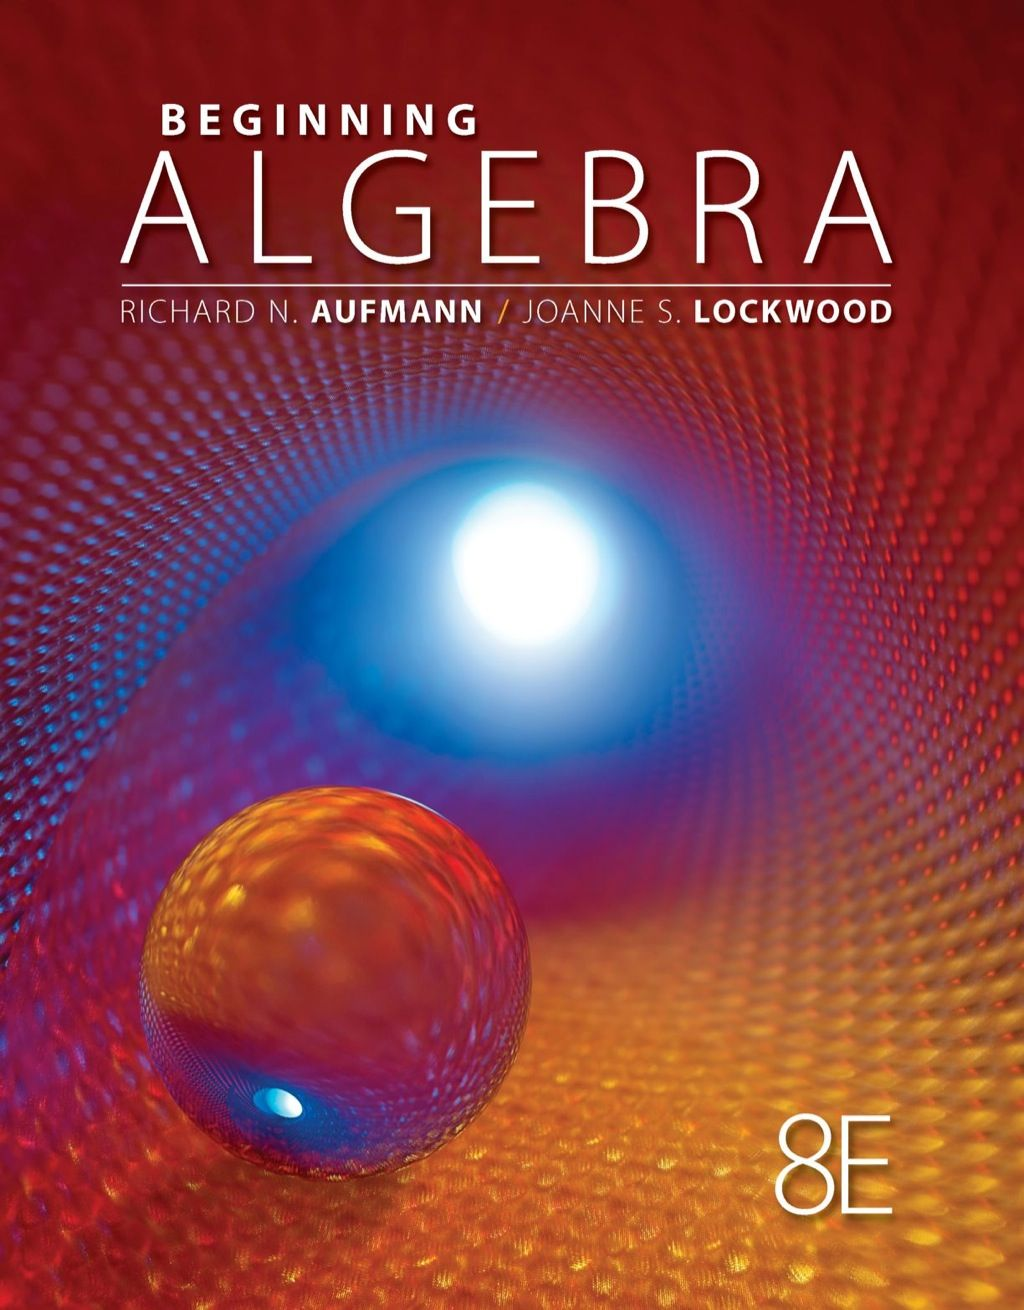 Beginning Algebra Ebook Rental In